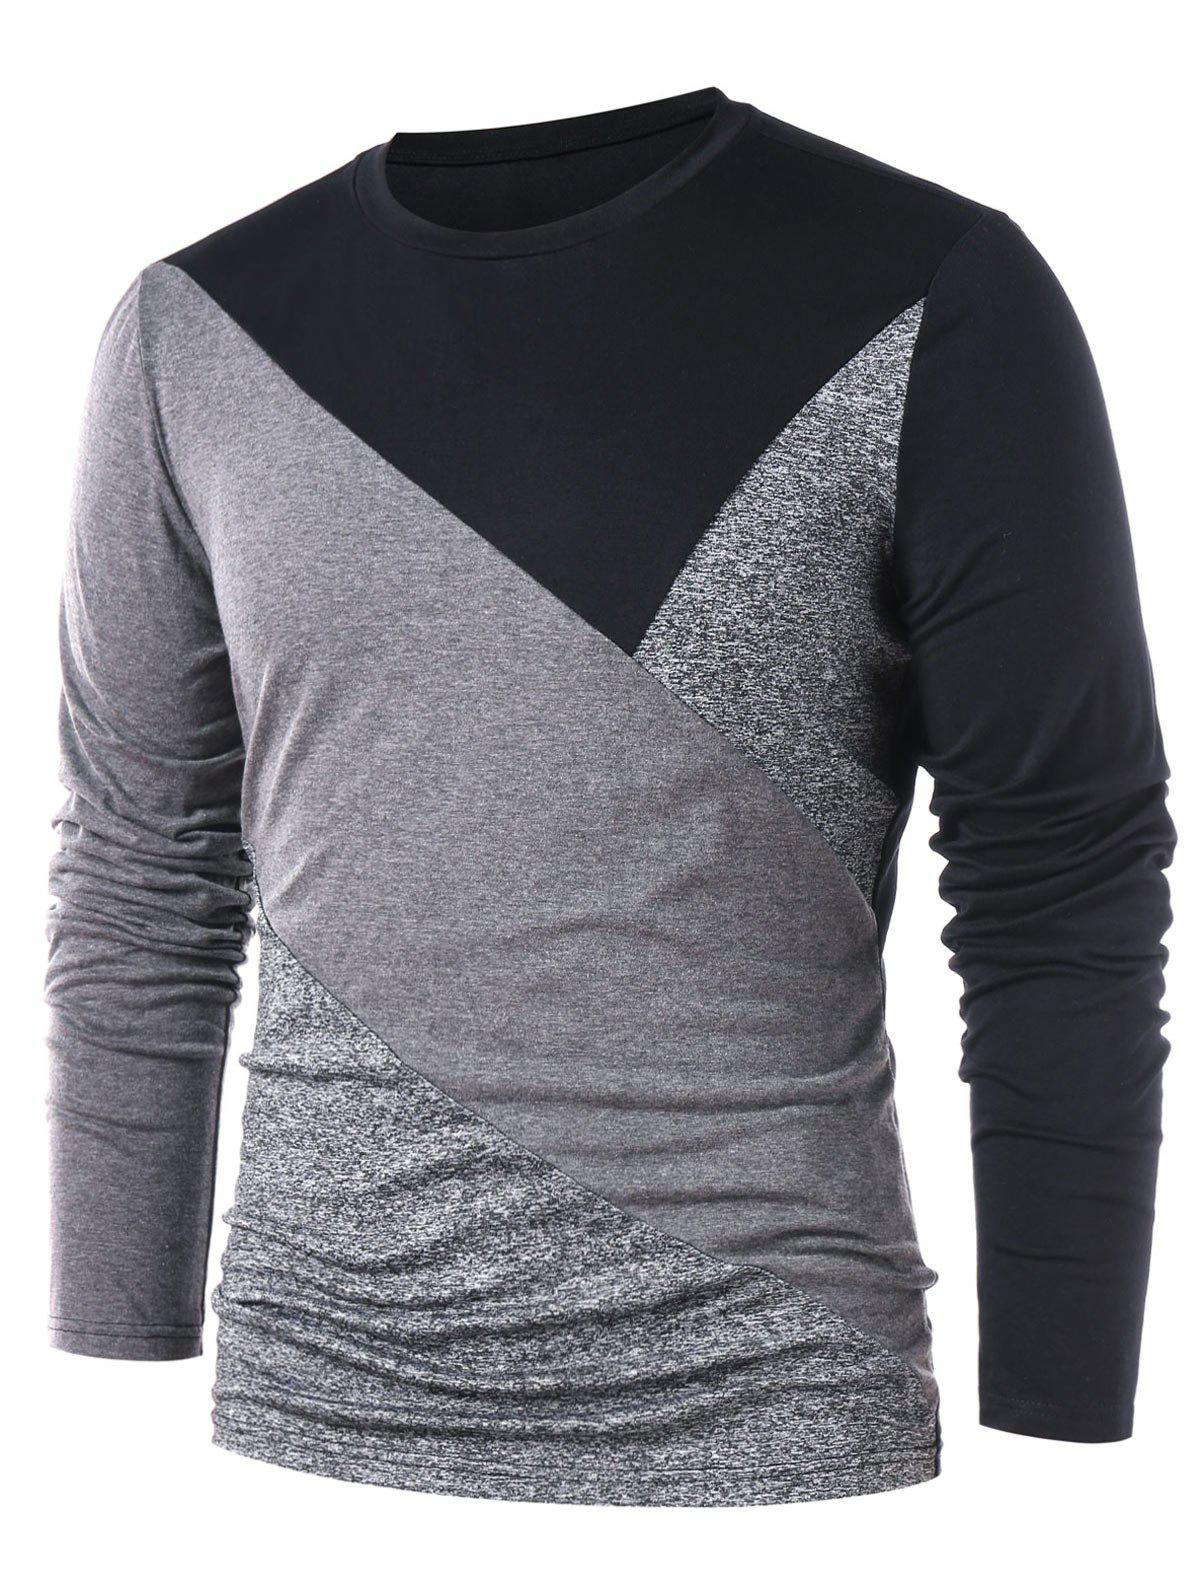 Round Neck Contrast Color T-shirt - GRAY XL